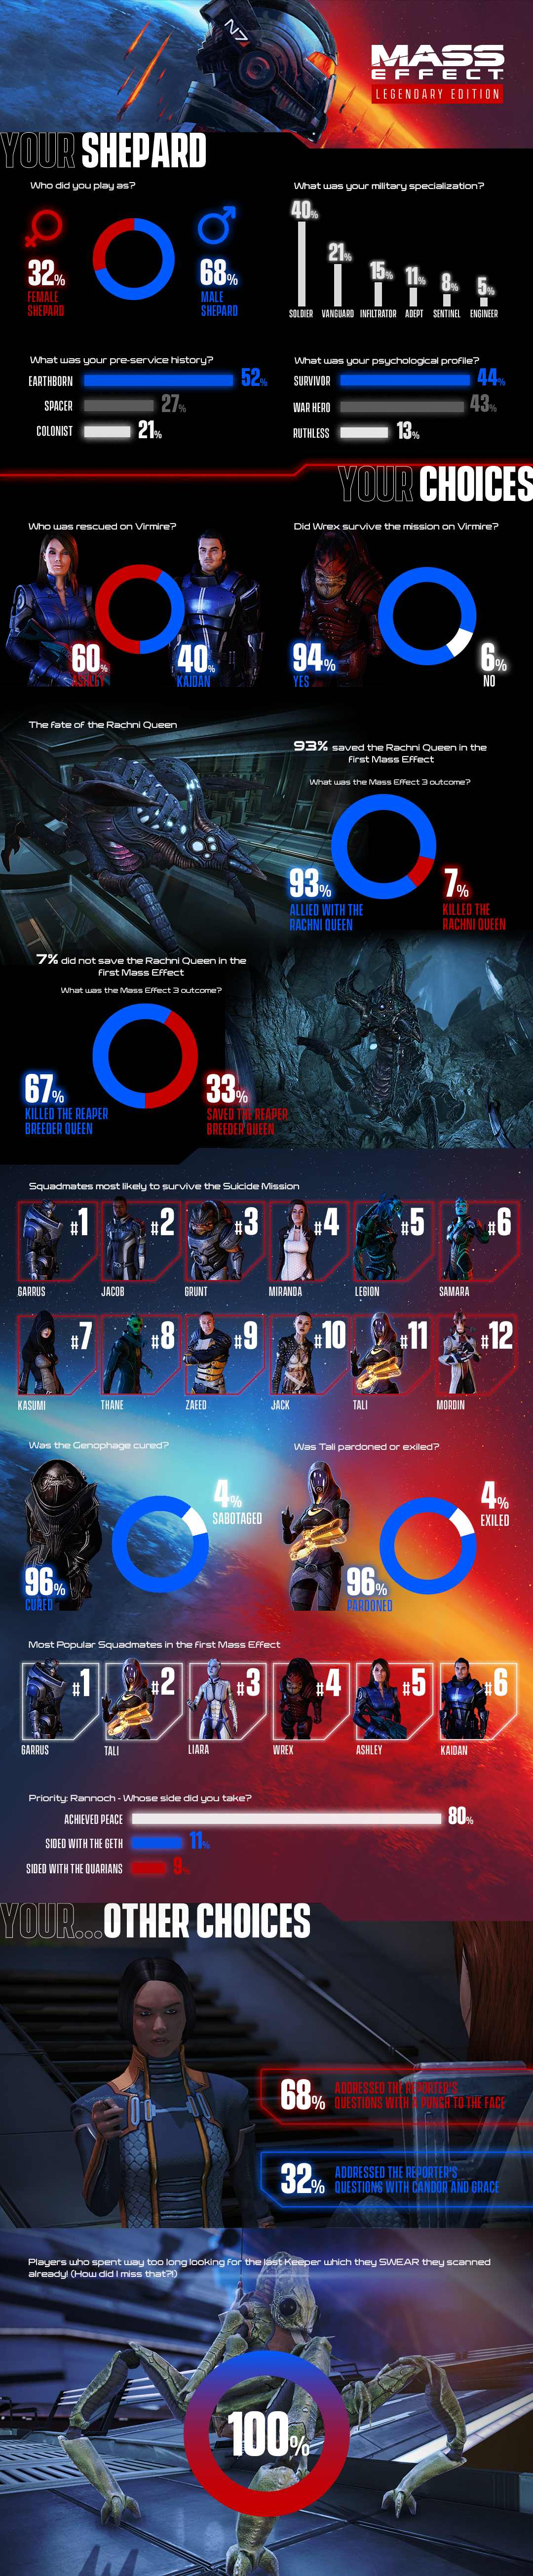 Mass Effect: Legendary Edition: This is how players decided - new infographic